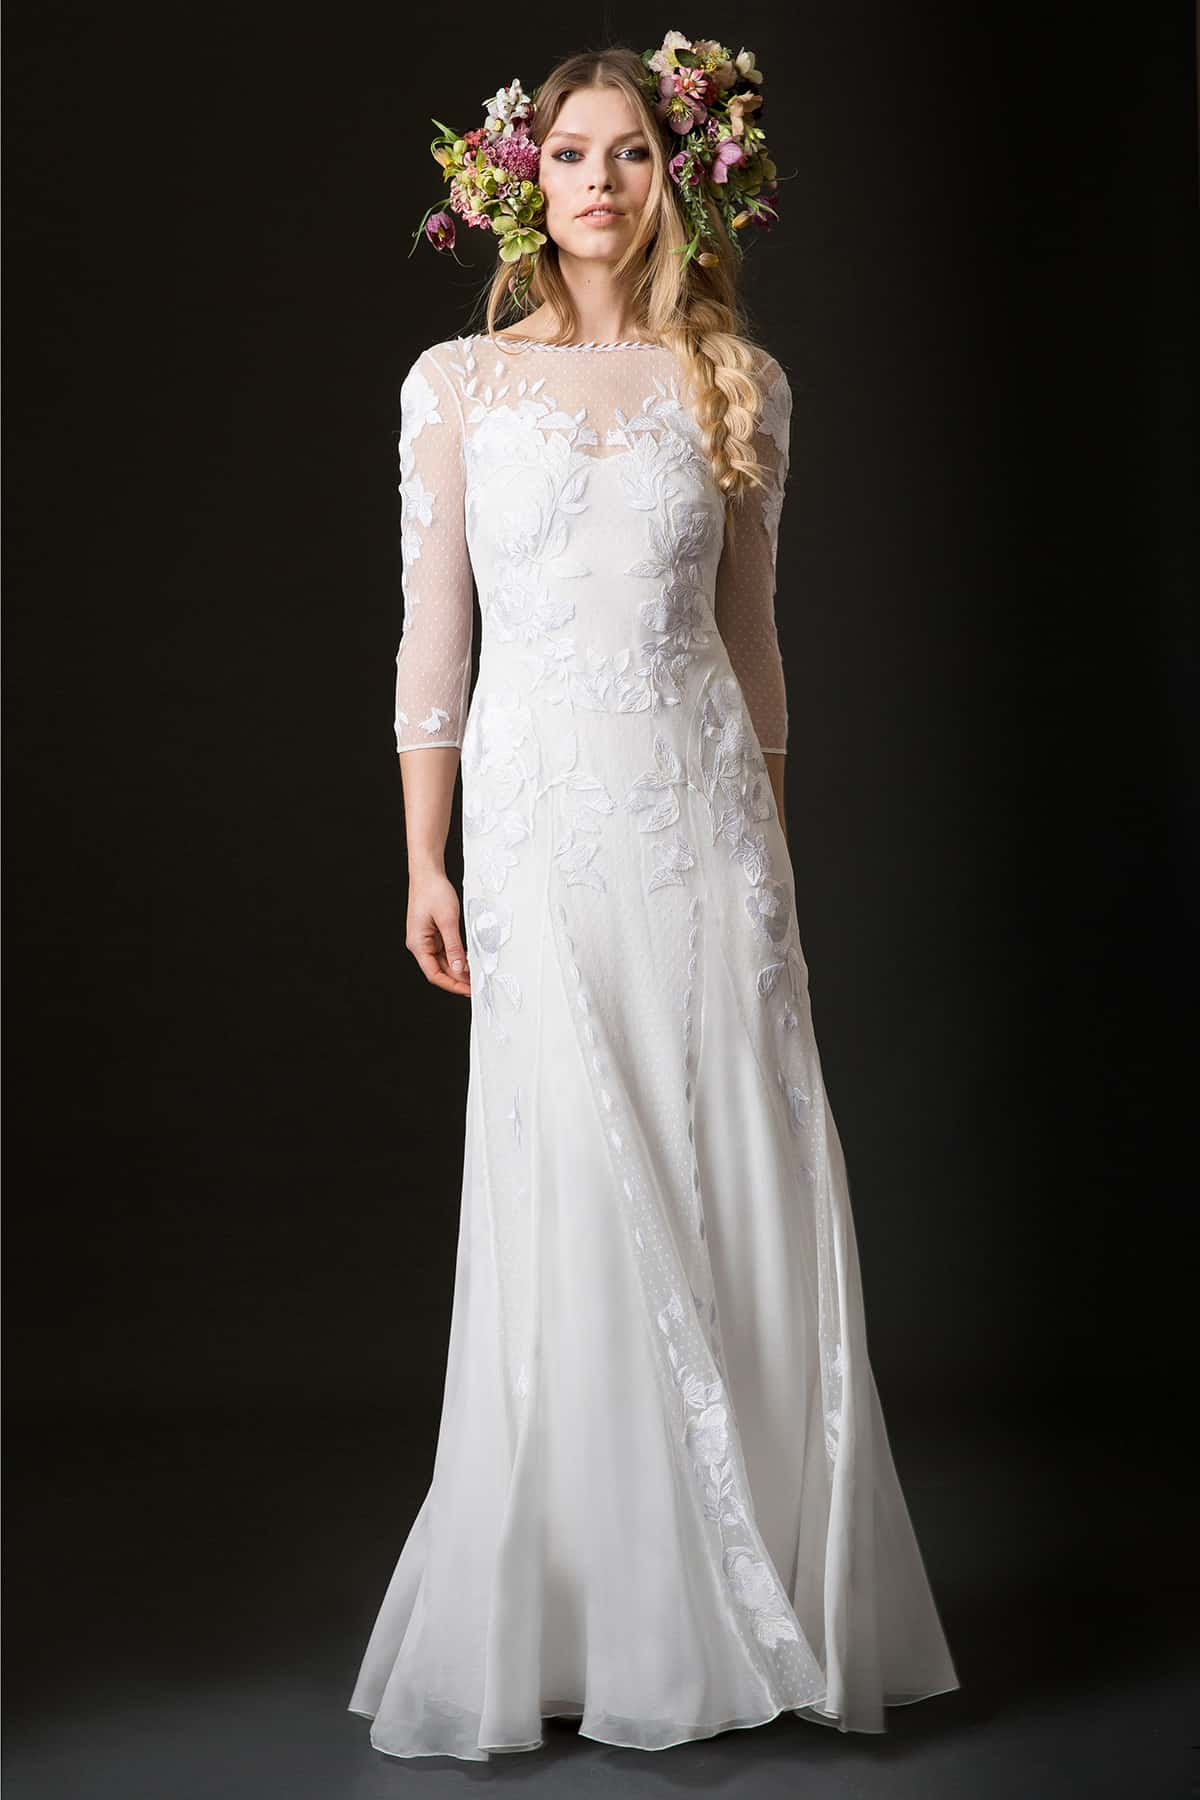 03-Aubrey-Dress-White-Temperley-Bridal